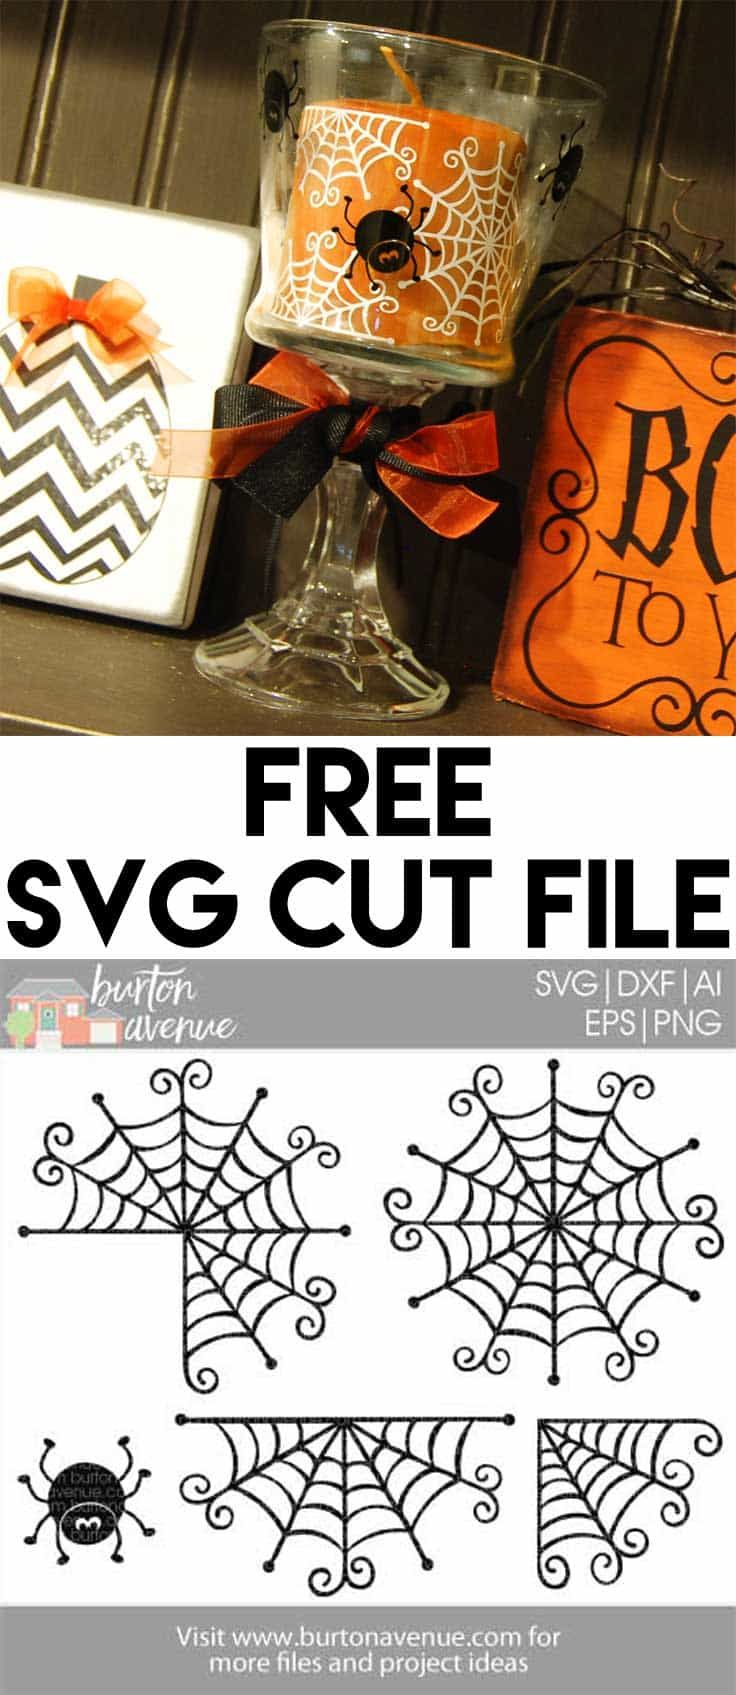 DIY Spider Web Candles (With images) Cricut halloween